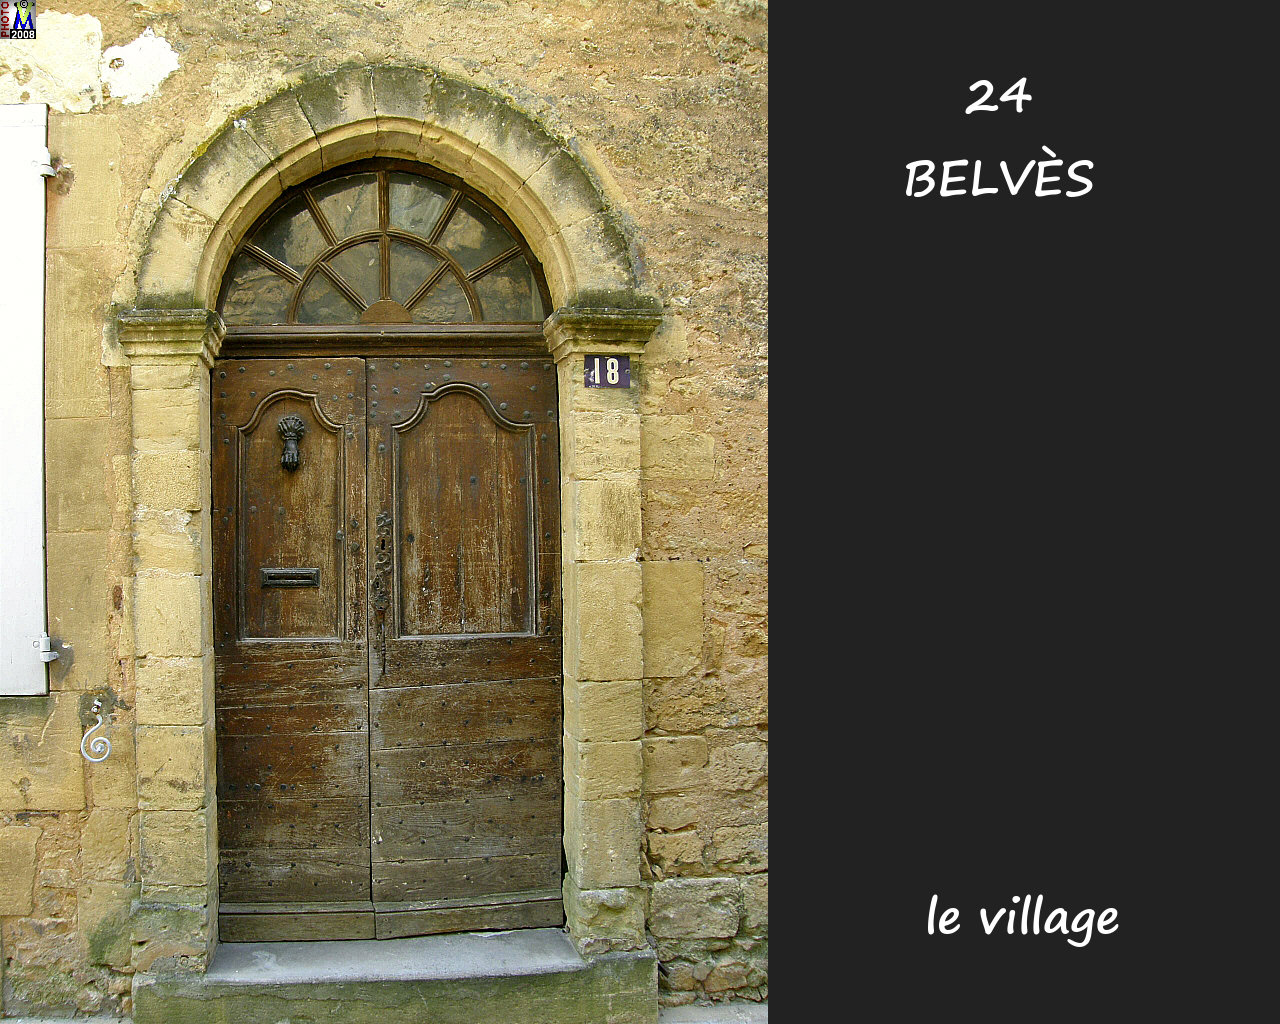 24BELVES_village_178.jpg